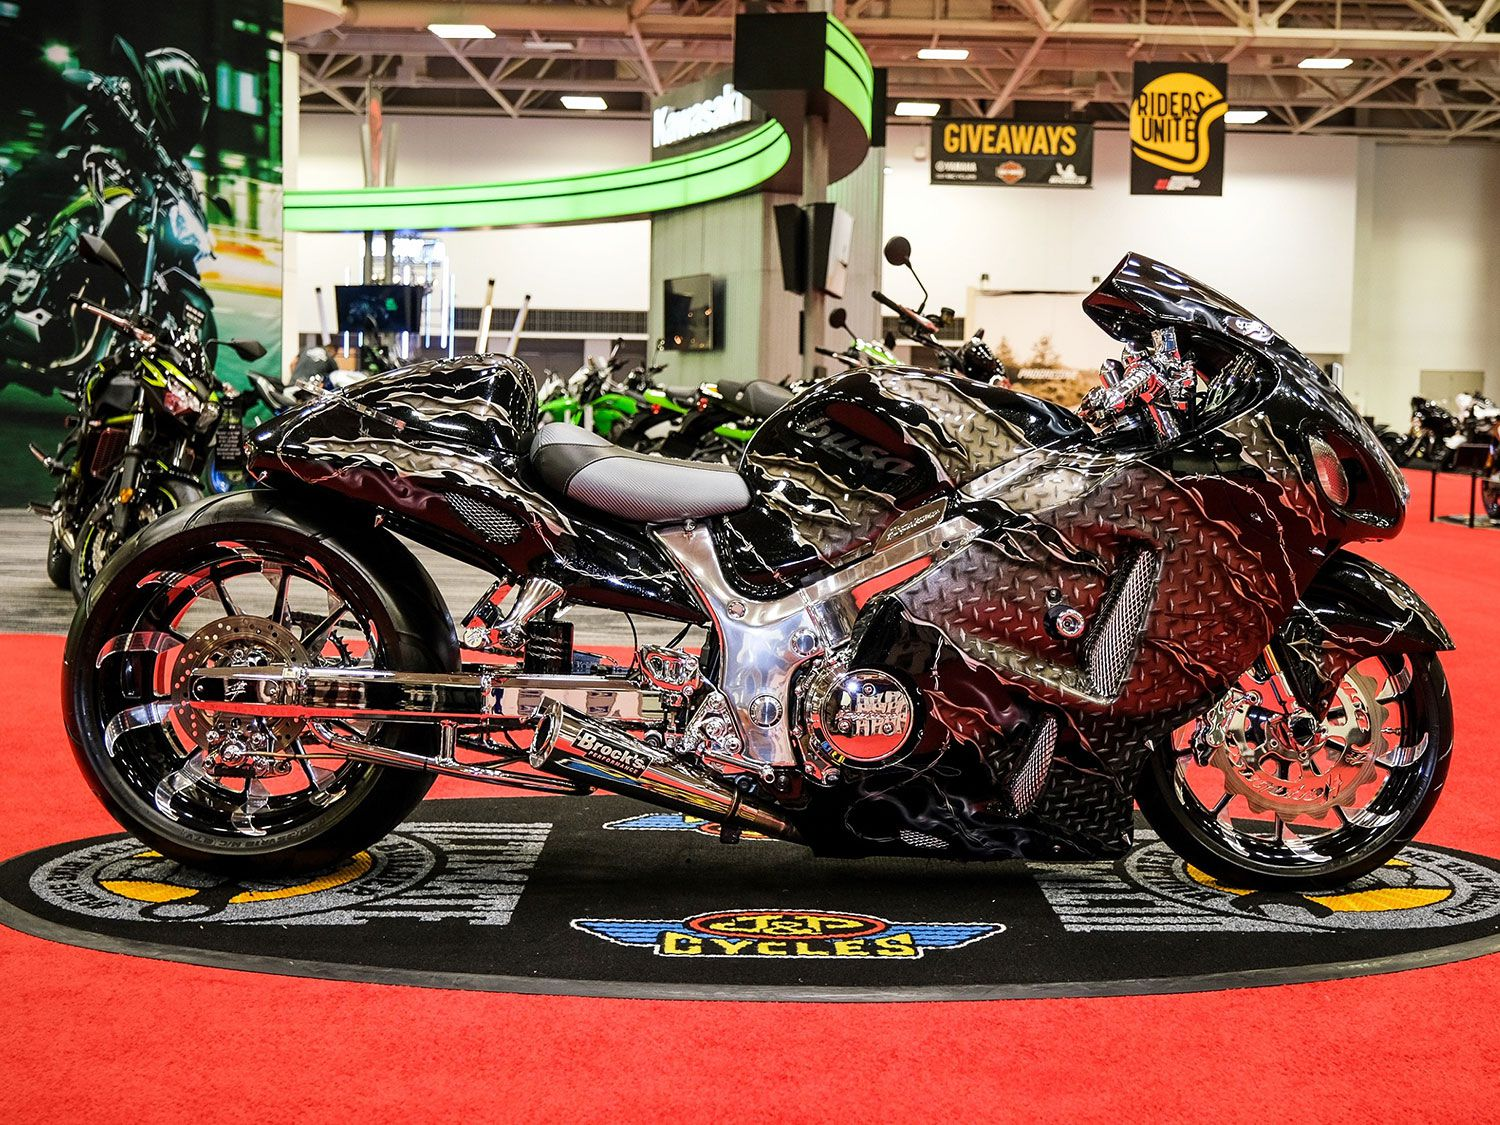 Juan Rodriguez of JR Customs with painter JP Customs took home first in Custom Street with a 2004 Suzuki Hayabusa featuring a molded windscreen, a 300-fat tire kit with Tornado wheels, and polished chrome frame.